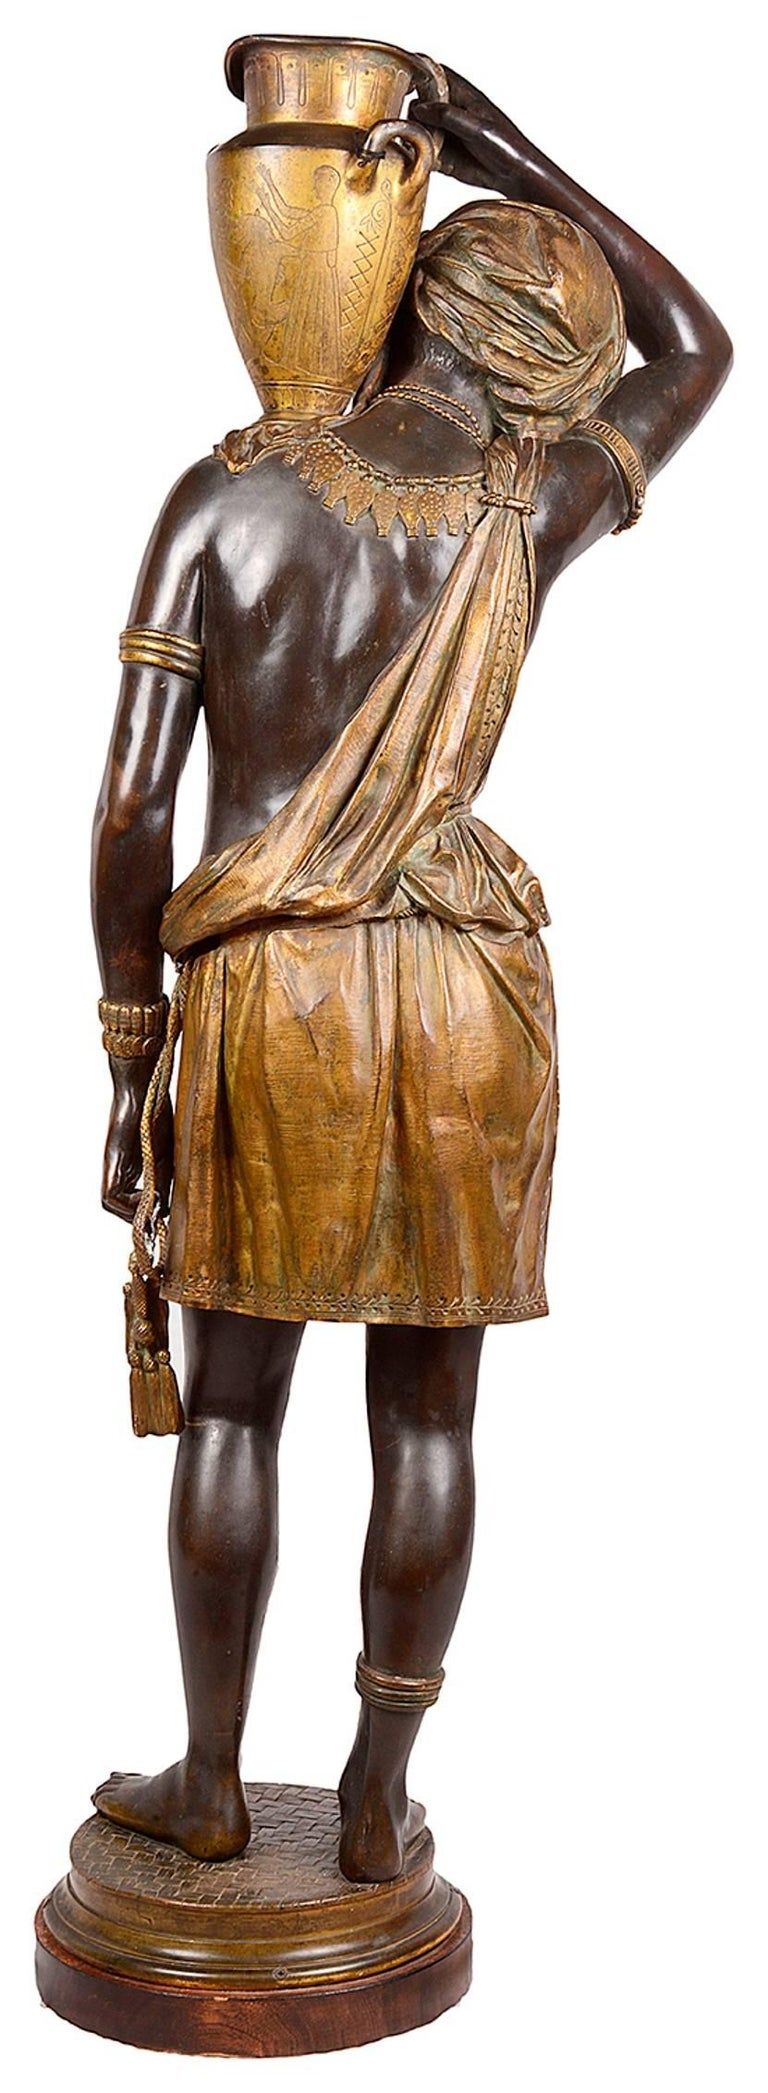 A very good quality large 19th century bronze and gilded Nubian figure carrying and water jug. Signed; Graux-Marly, foundry.